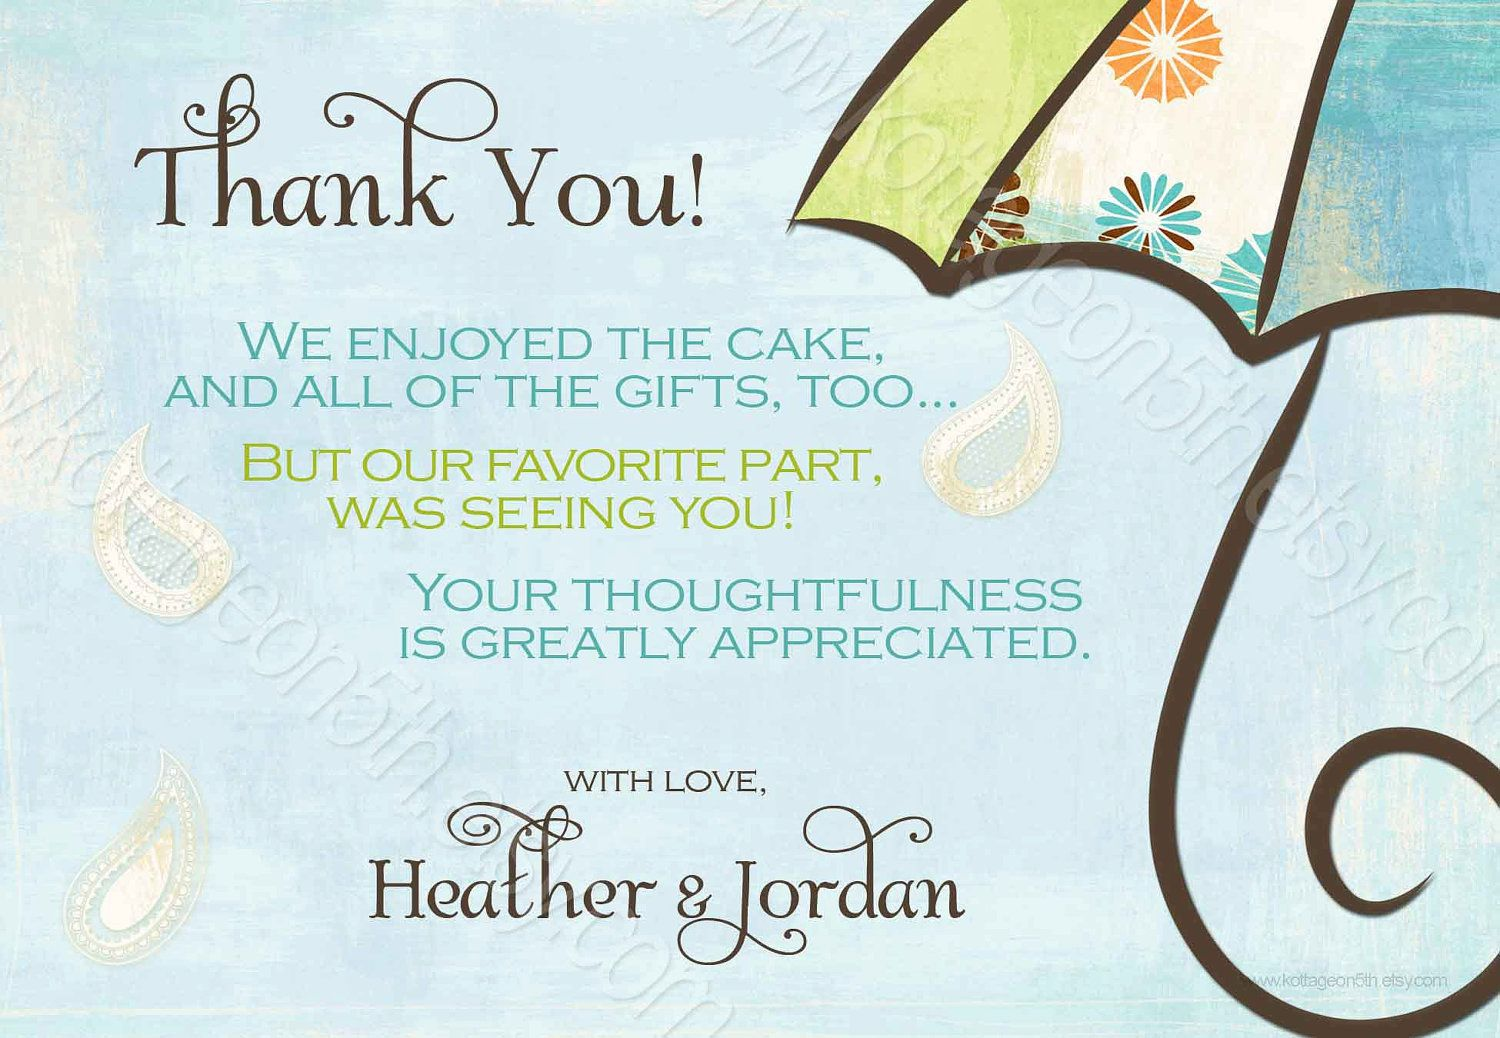 009 Singular Thank You Card Wording Baby Shower Highest Quality  Note For Money Someone Who Didn't Attend HostesFull